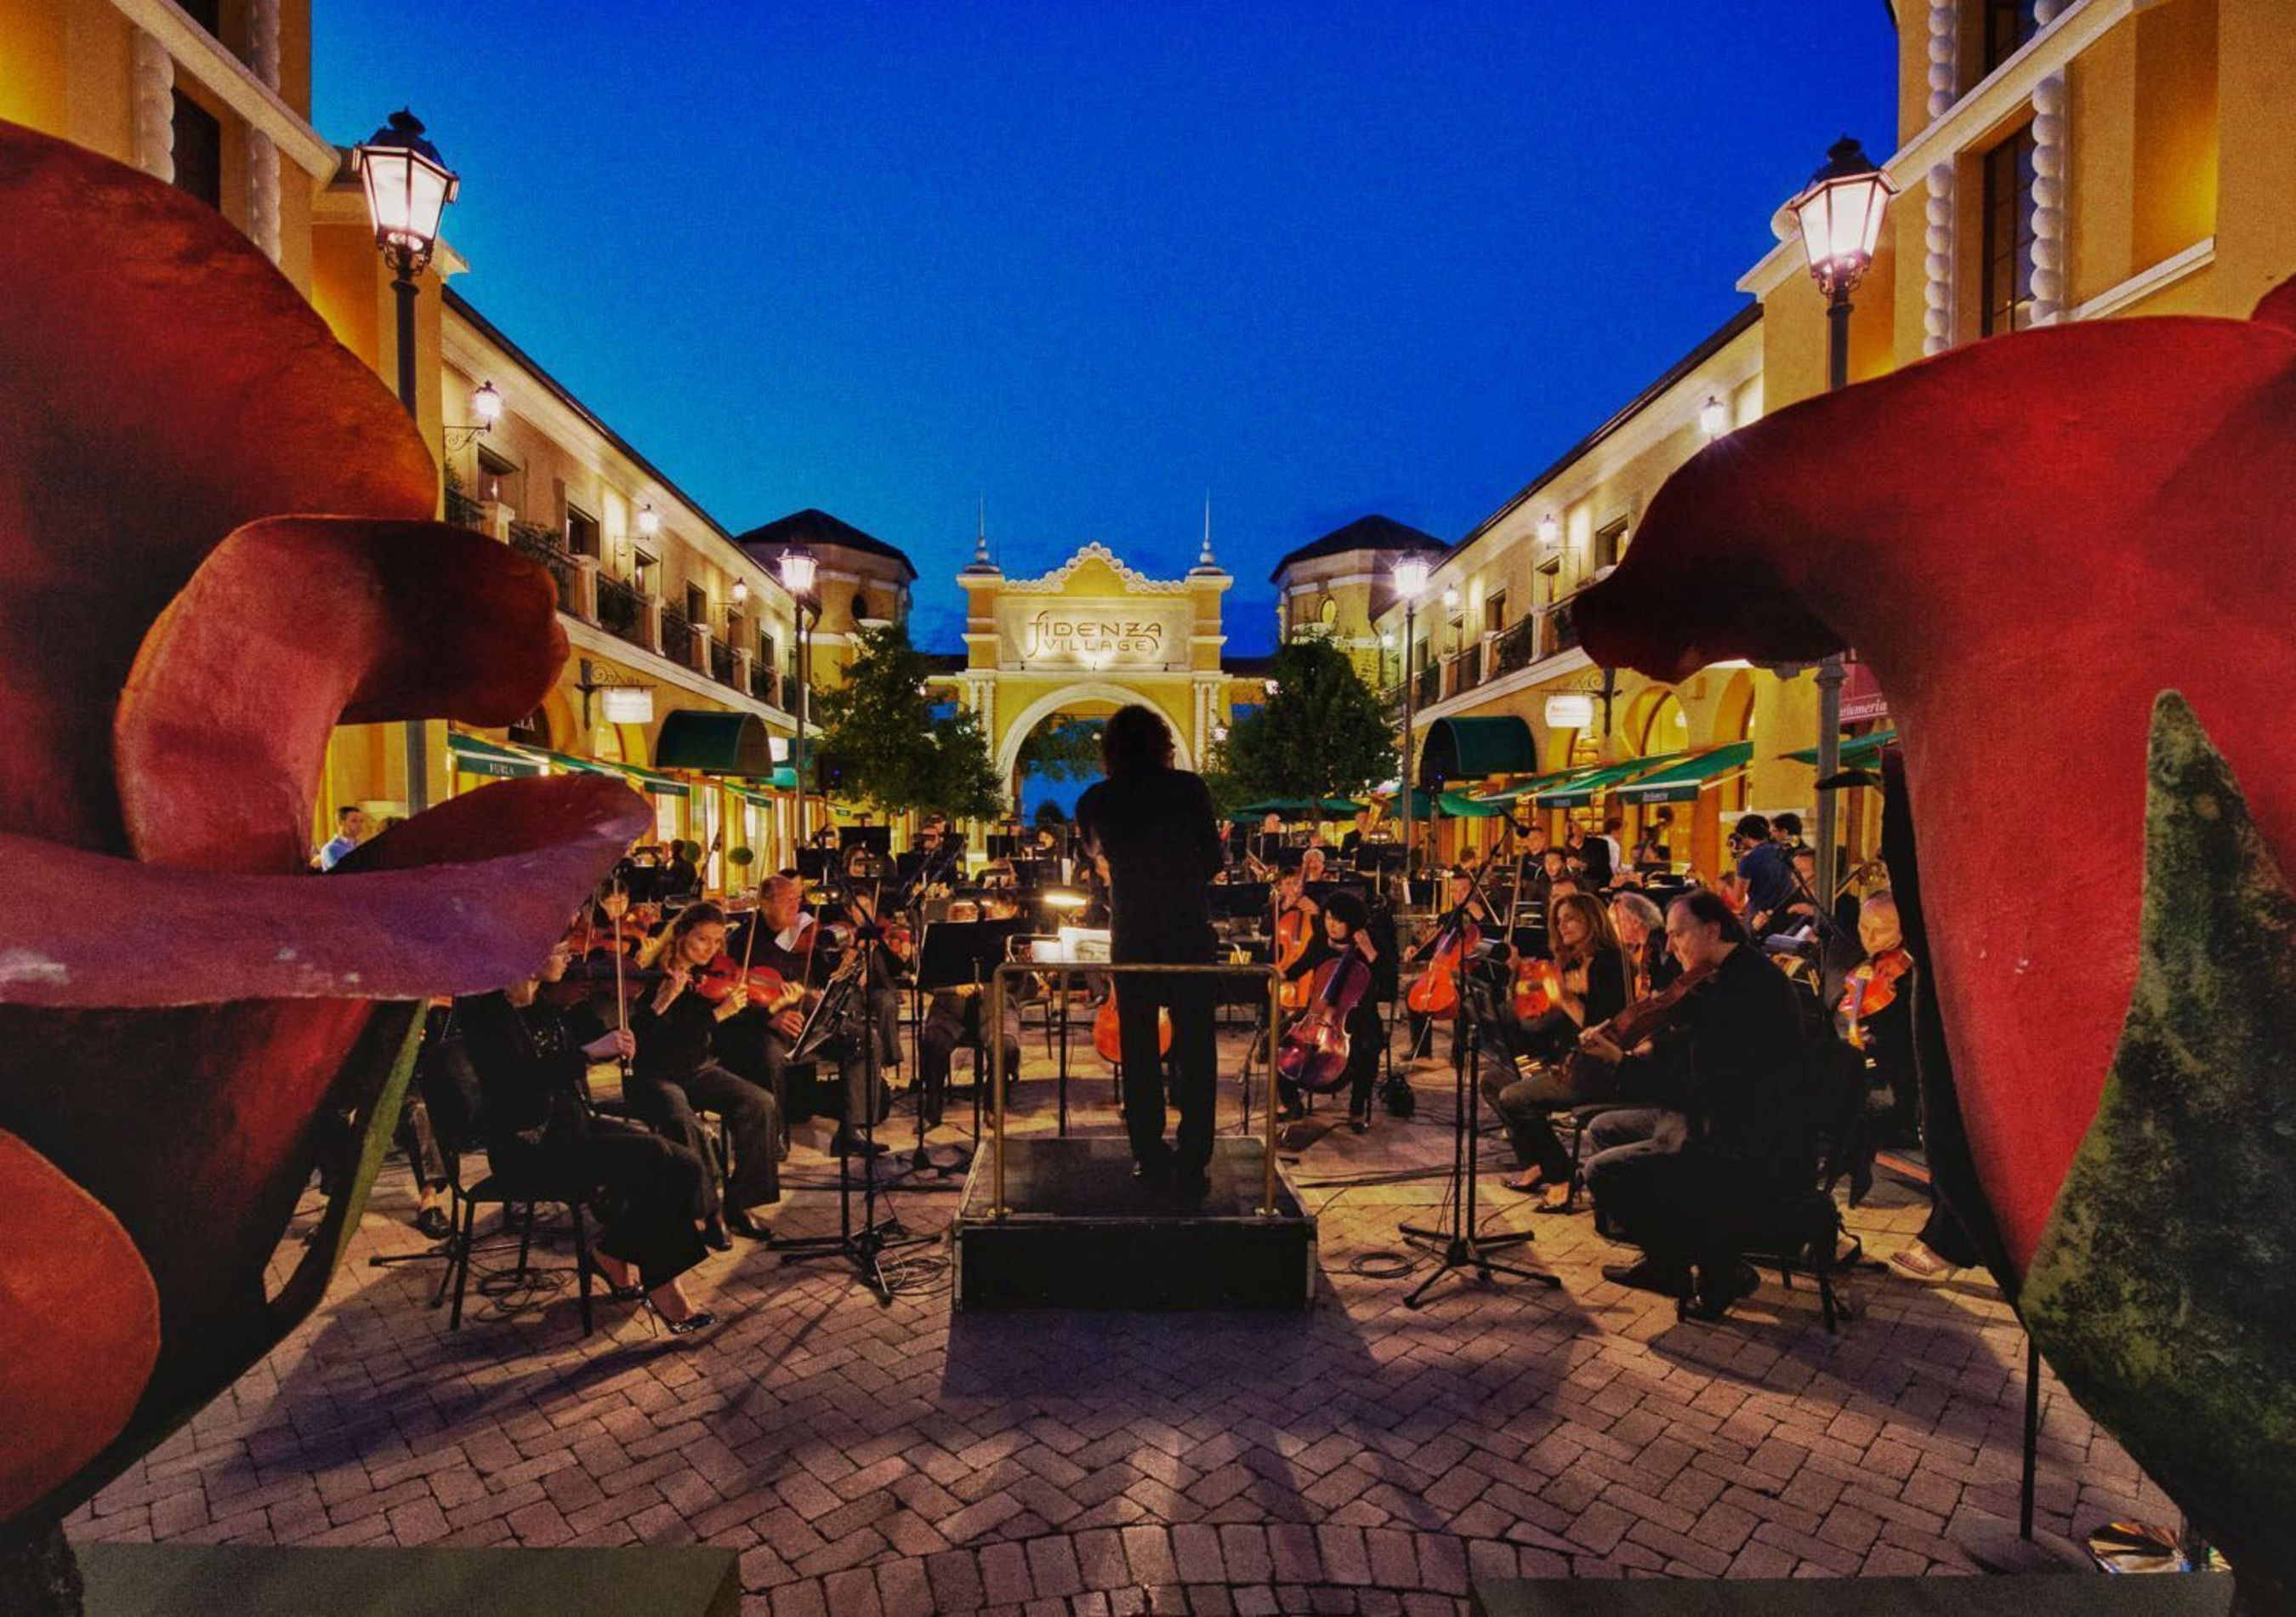 Fidenza Village Becomes 'The Embassy of Made in Italy' for EXPO Milano 2015 (PRNewsFoto/Fidenza Village)